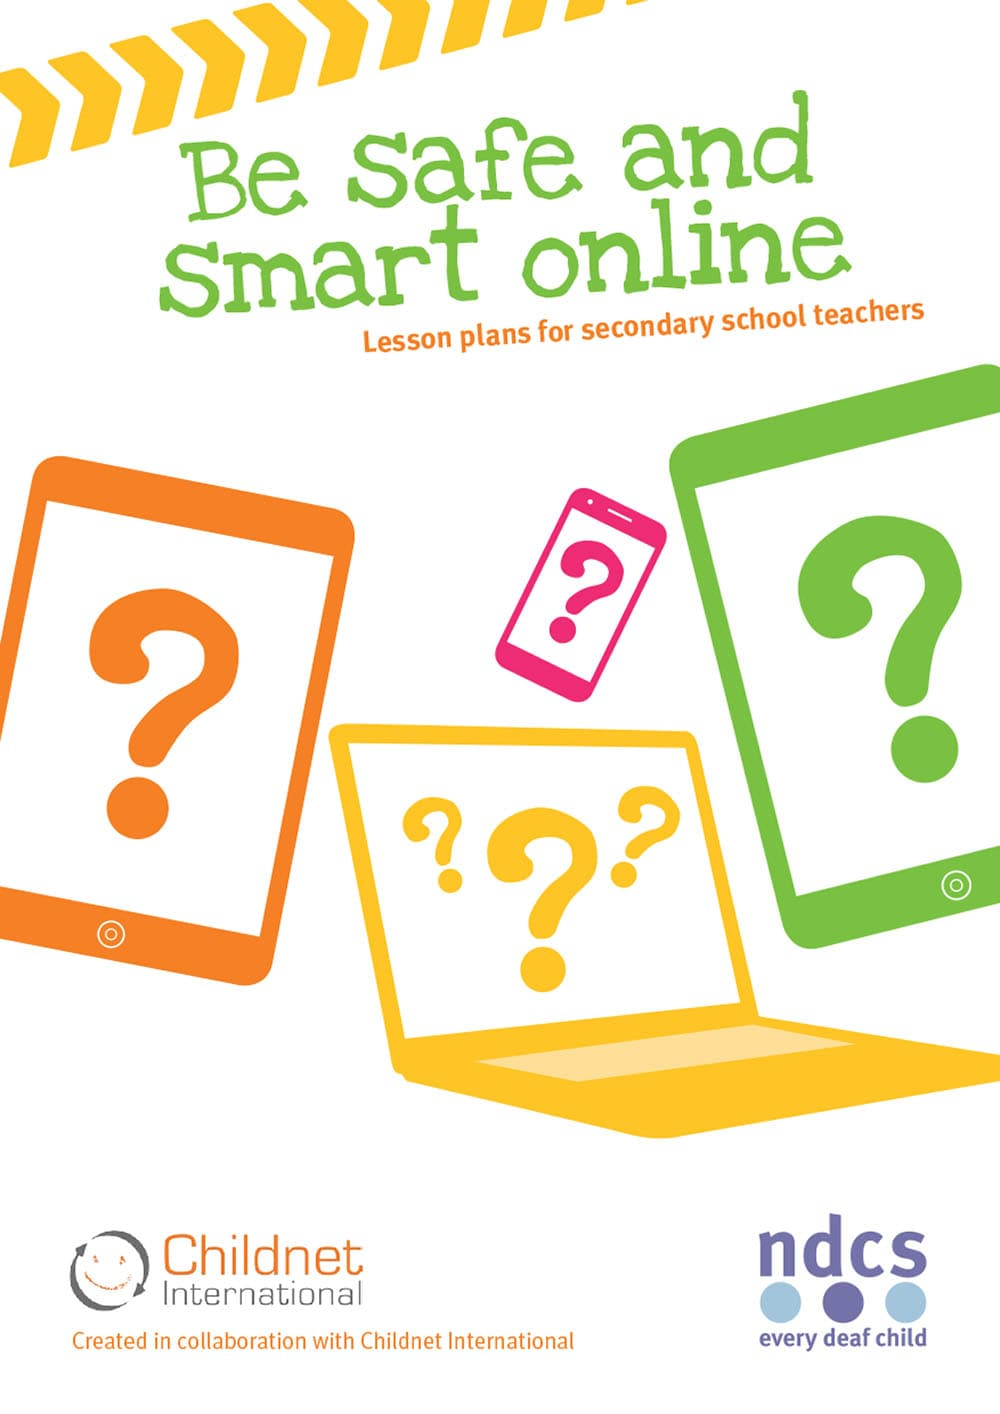 Be Safe and Smart Online: Lesson plans for secondary school teachers